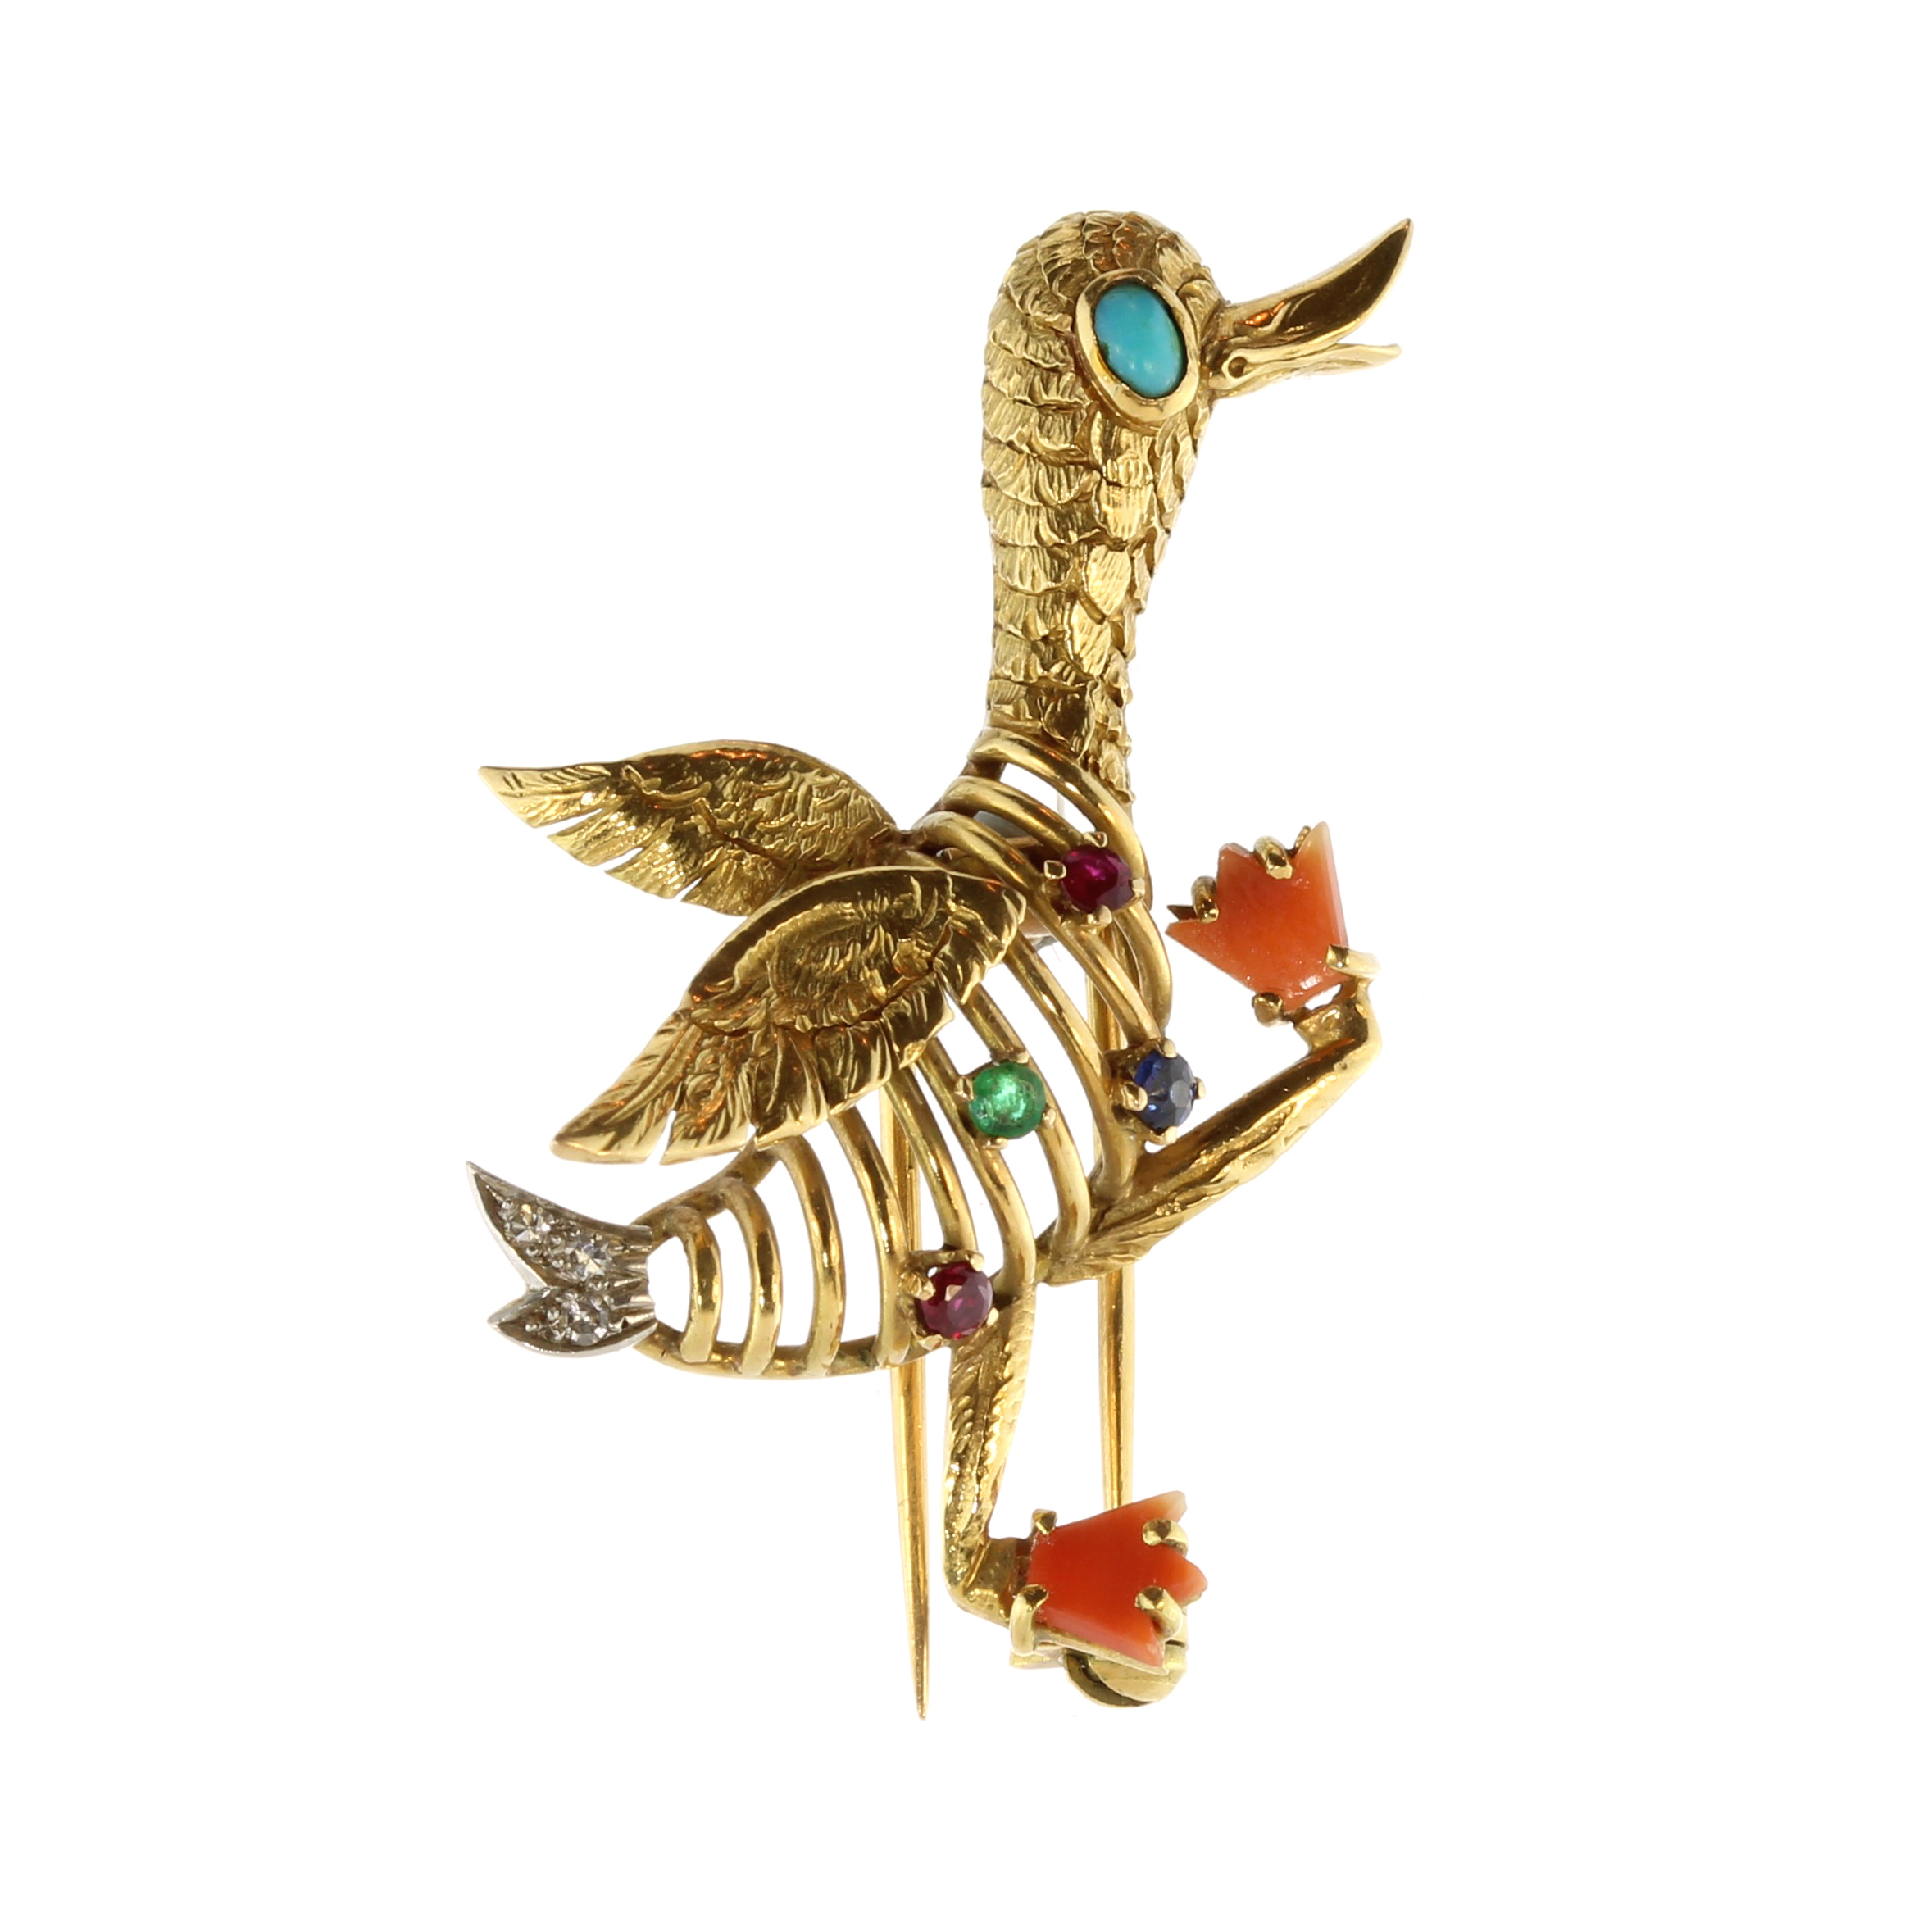 Los 24 - A vintage novelty jewelled goose brooch in 18ct yellow gold designed to depict a goose, walking in